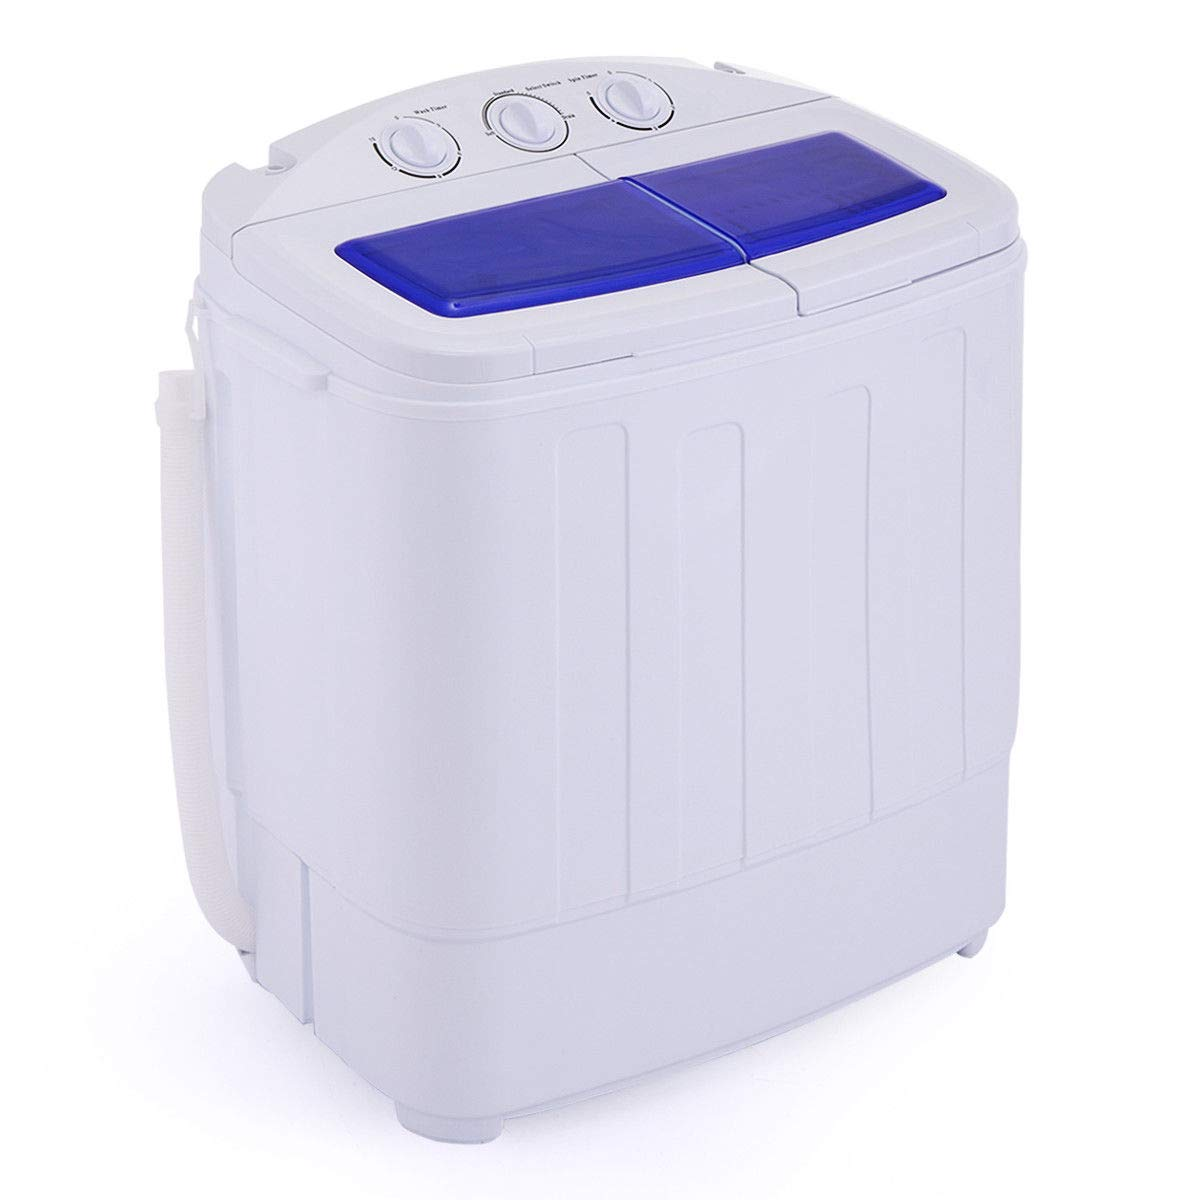 LAZYMOON Mini Portable Washing Machine Twin Tub 12.8 lbs Capacity Compact Wash Spin Dry Cycle Laundry